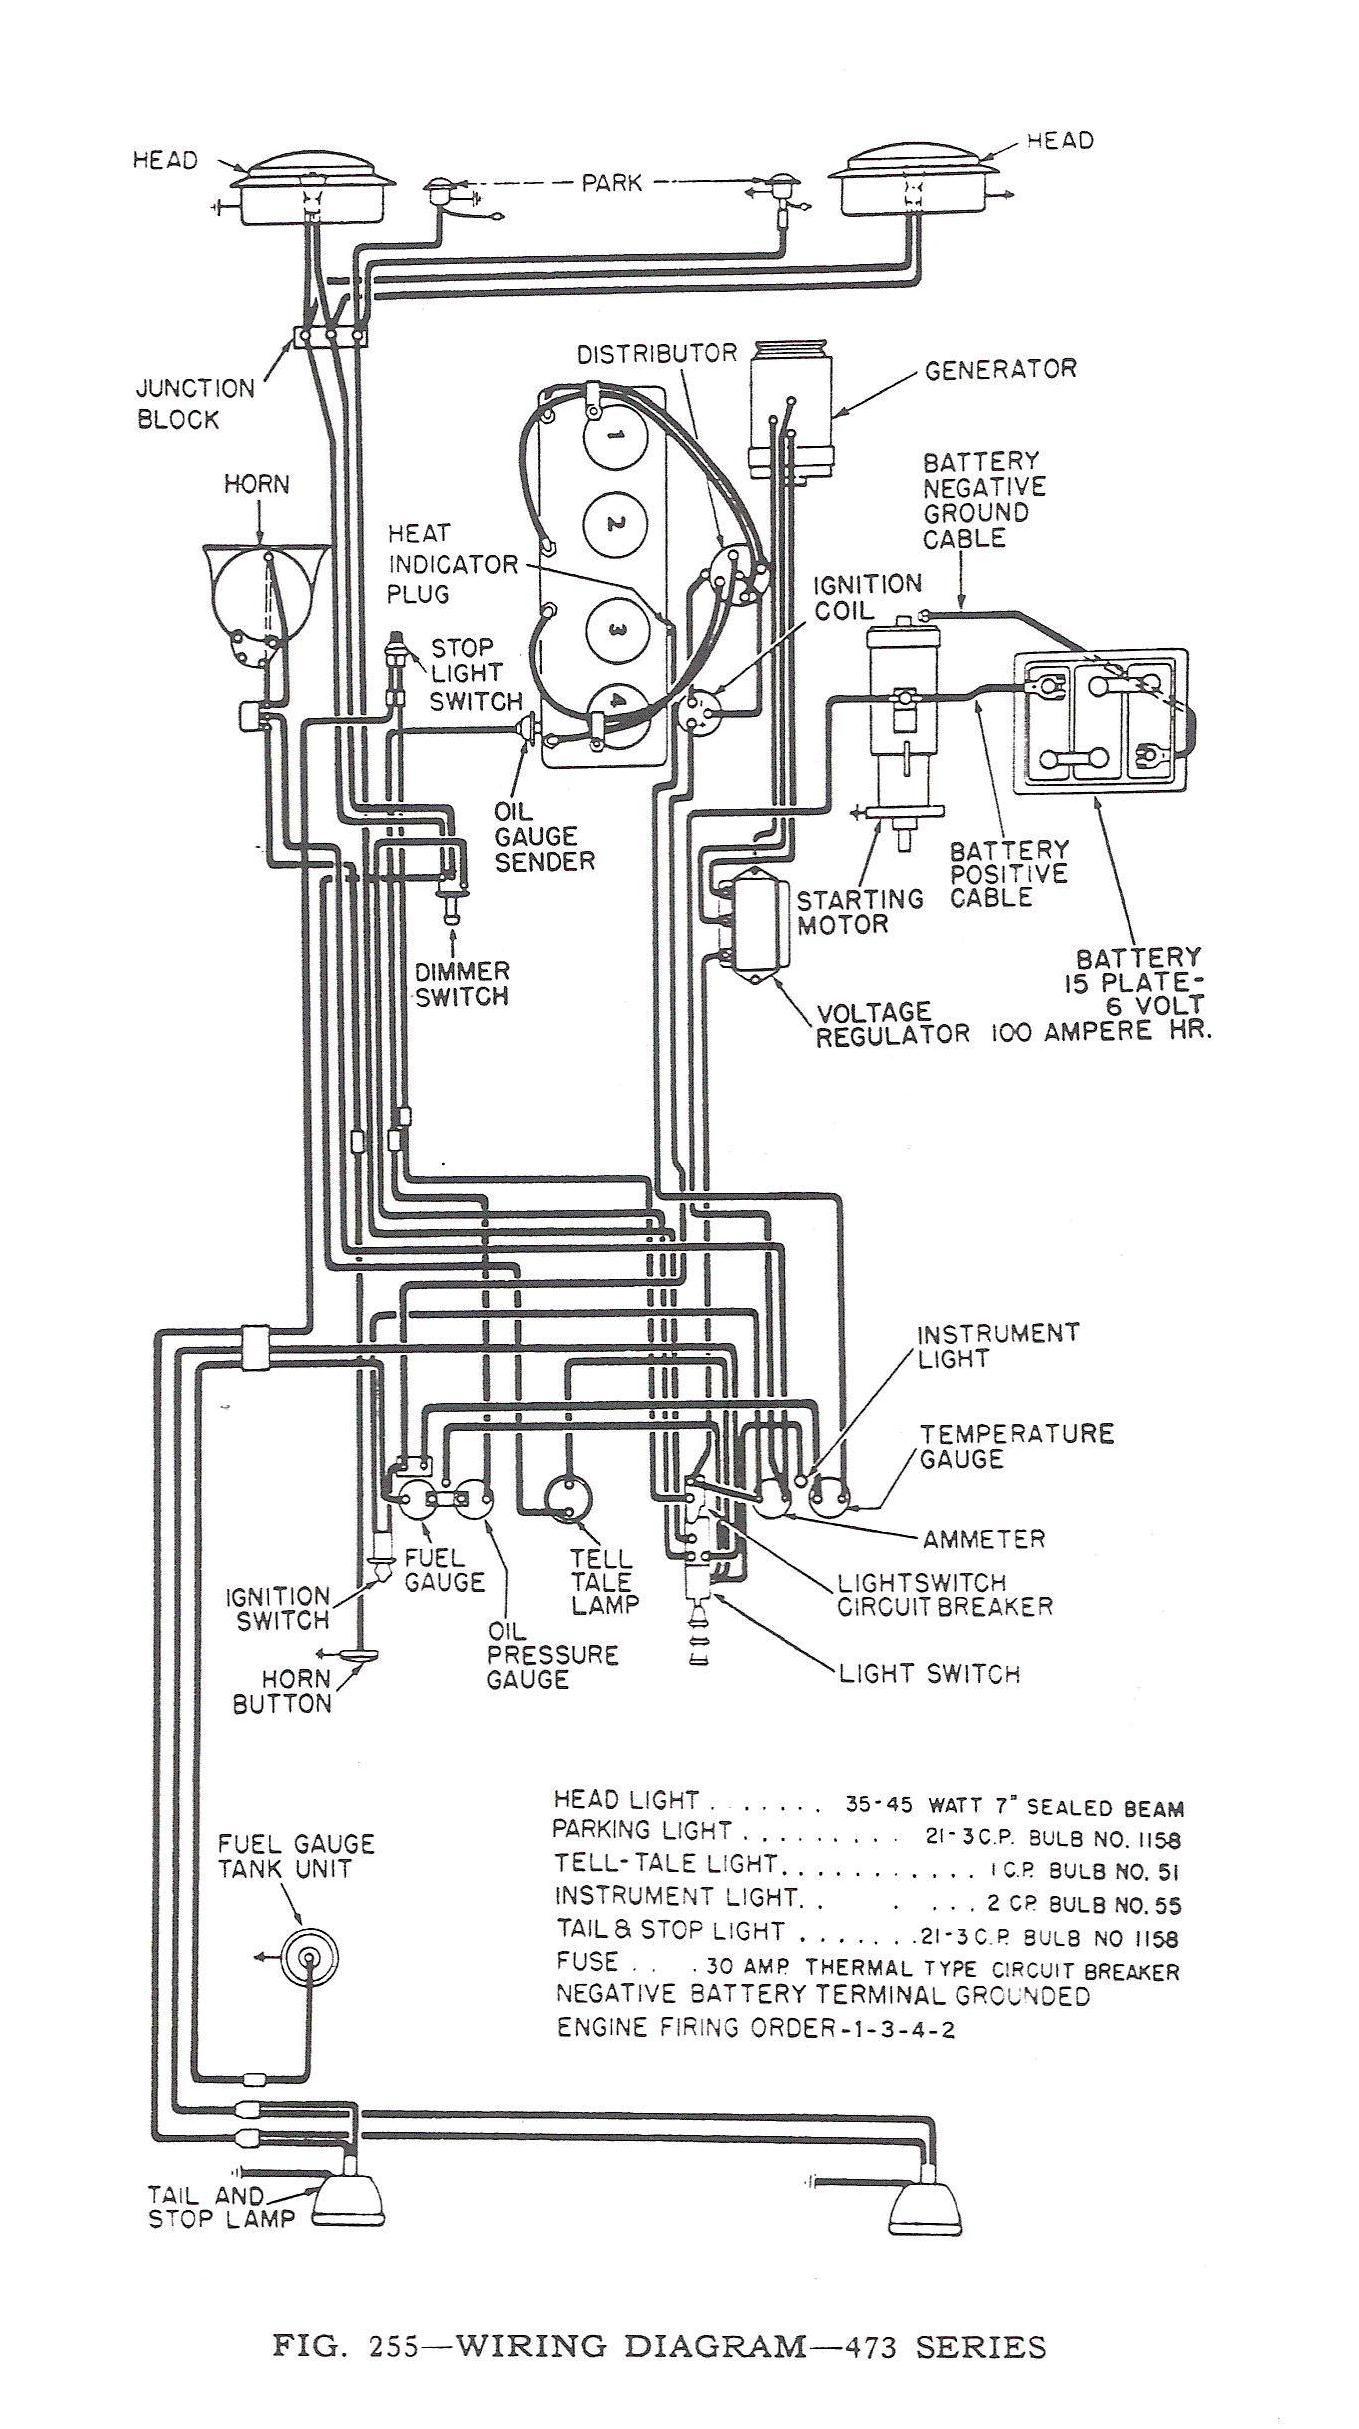 willys jeep wiring diagram willys jeep wiring diagram willys jeep rh lolinewr today Jeep Headlight Switch Wiring Diagram 1976 1945 Willys Jeep Wiring Diagram